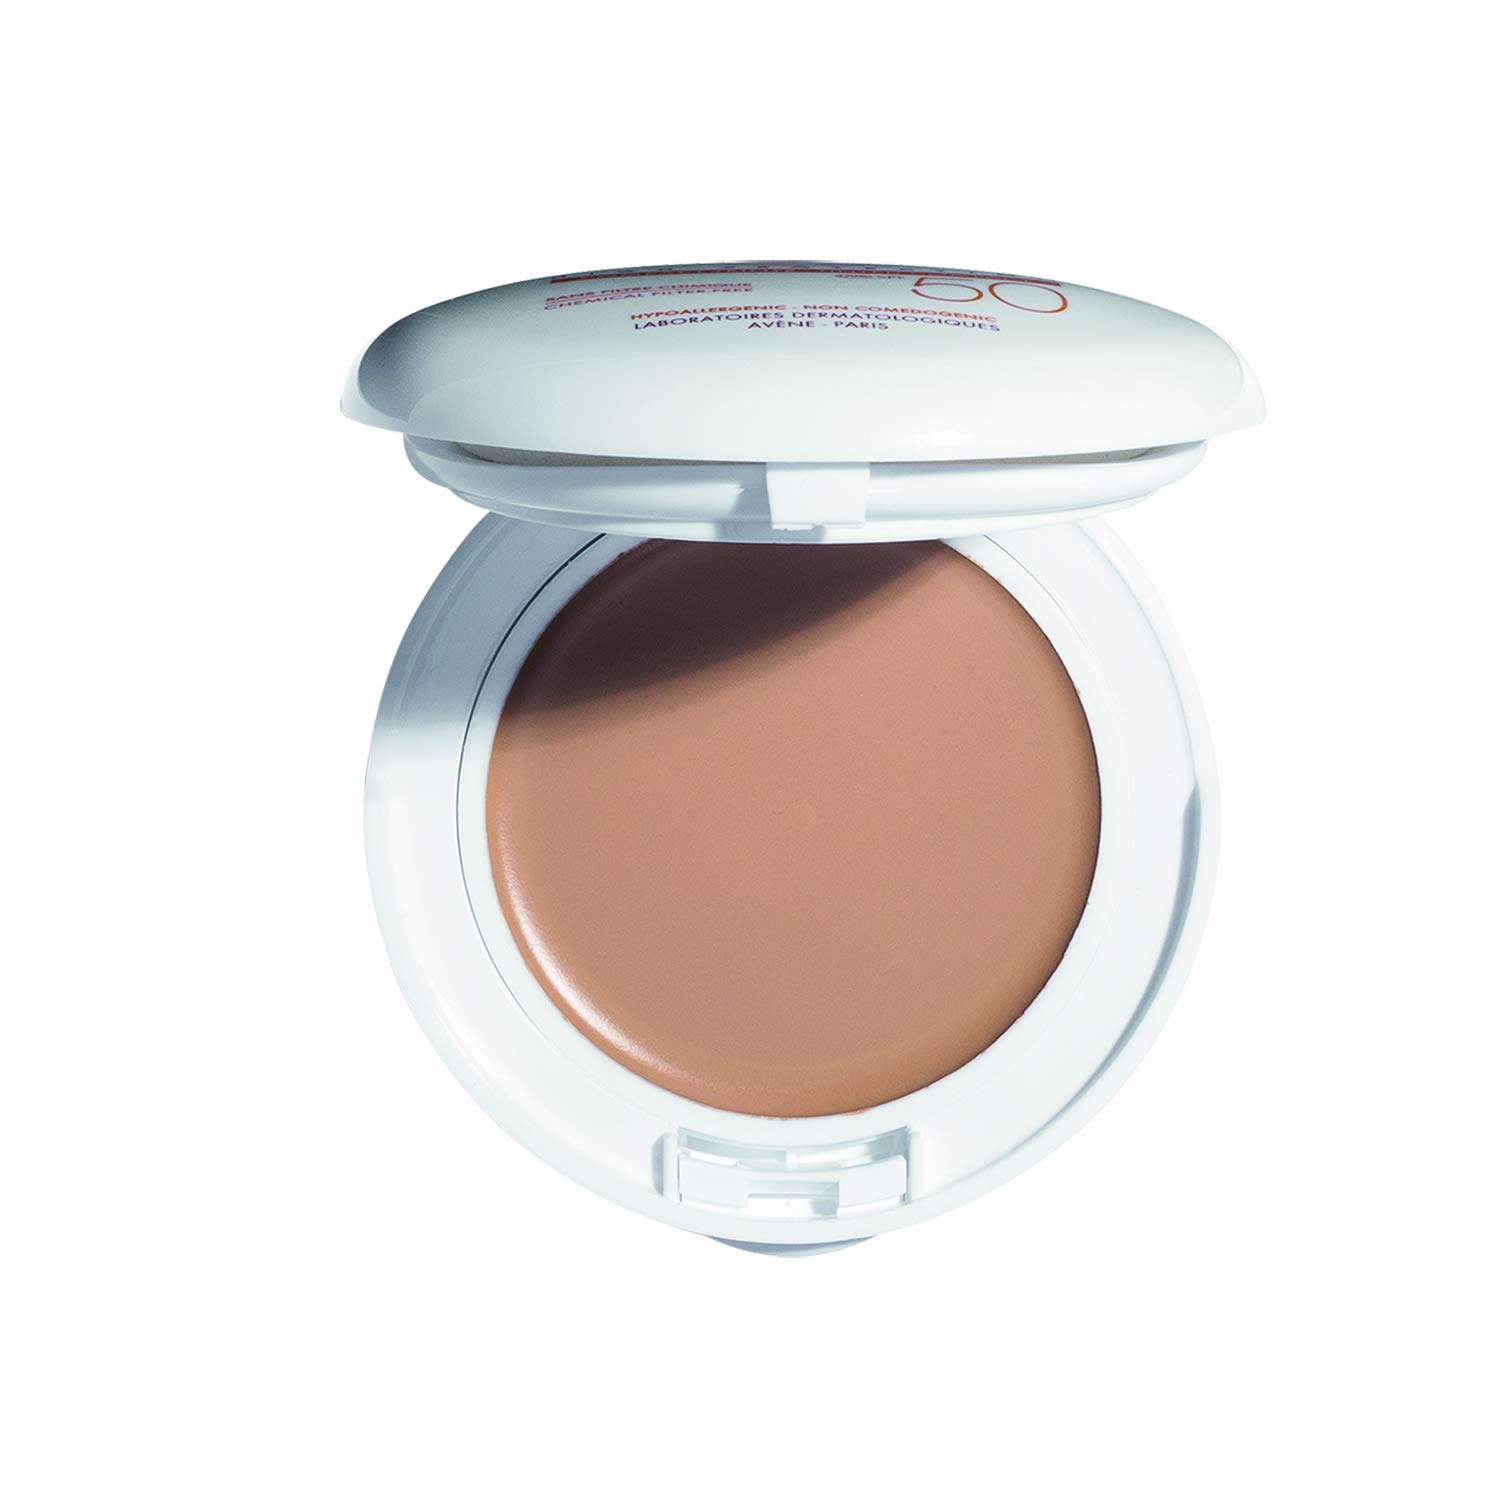 Eau Thermale Avene High Protection Beige Tinted Compact, Broad Spectrum SPF 50+, UVA/UVB Blue Light Protection, Water Resistant, Non-Greasy, 0.35 oz. by Eau Thermale Avène